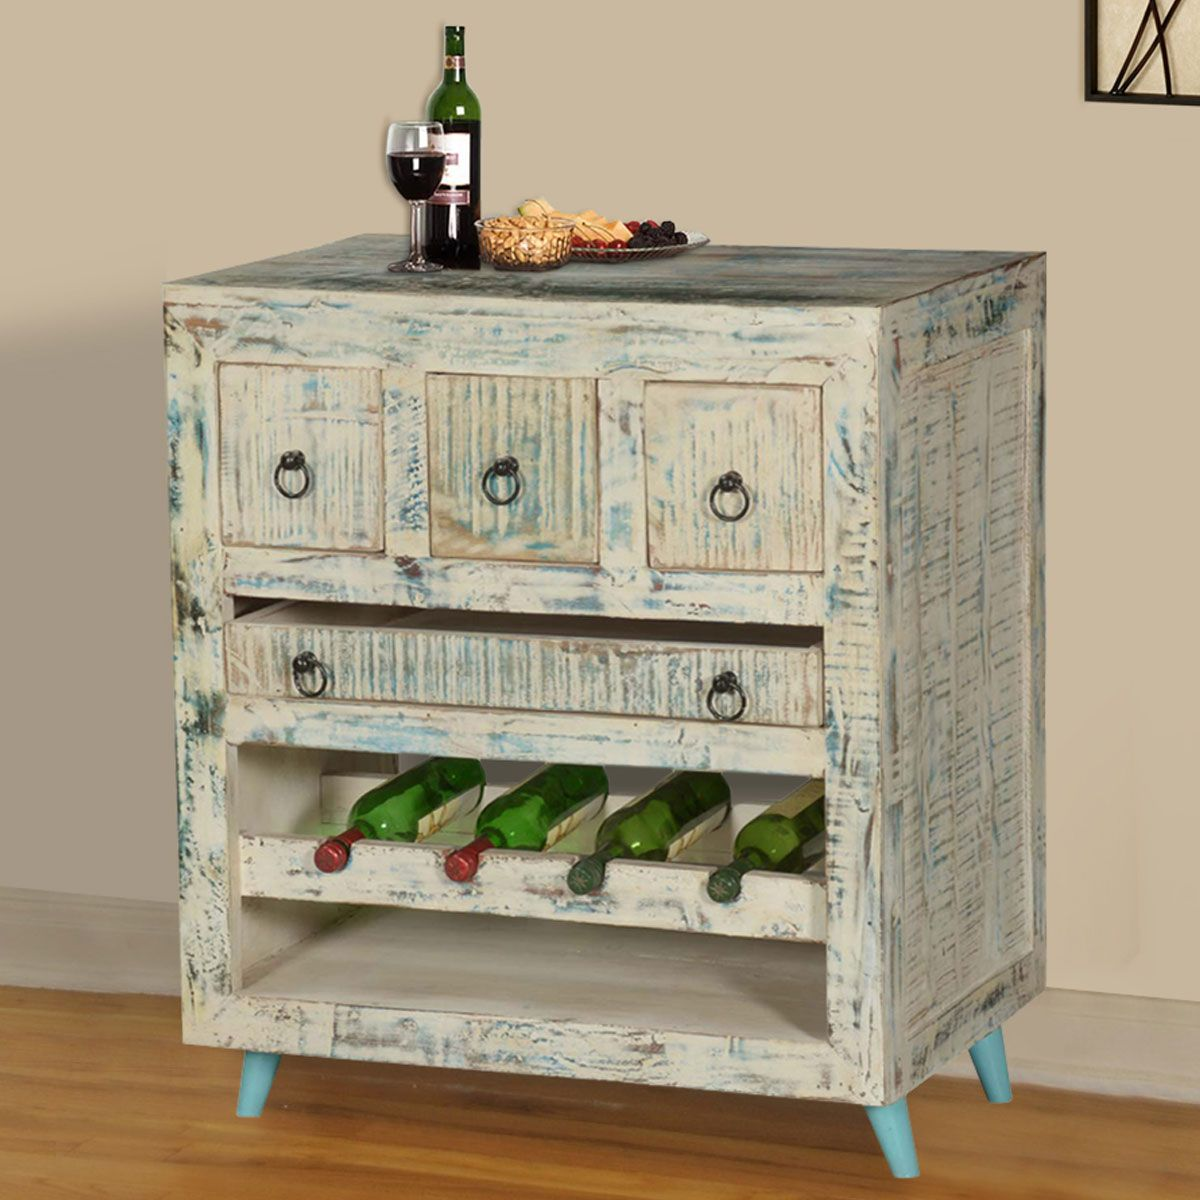 Sierra Living Concepts White Washed Reclaimed Wood Wine Rack Bar Cabinet Shop Home Decor Art Home Gorgeous Furniture Reclaimed Wood Wine Rack Rustic Farmhouse Furniture